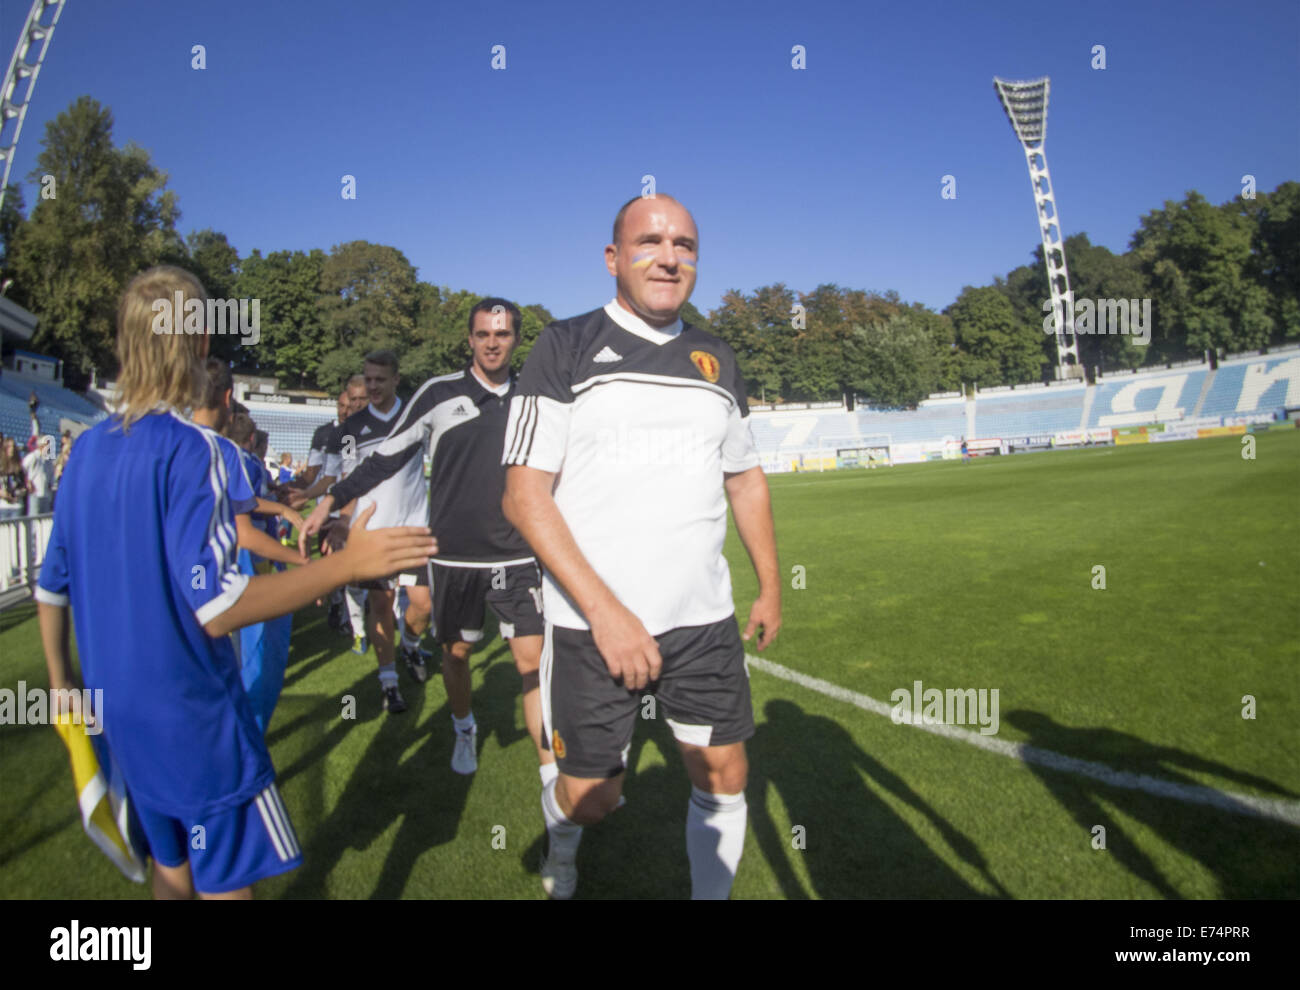 6th Sep, 2014. Team stars out on the field. 6th Sep, 2014. --In a friendly match of pop stars, movies stars, businessmen, - Stock Image